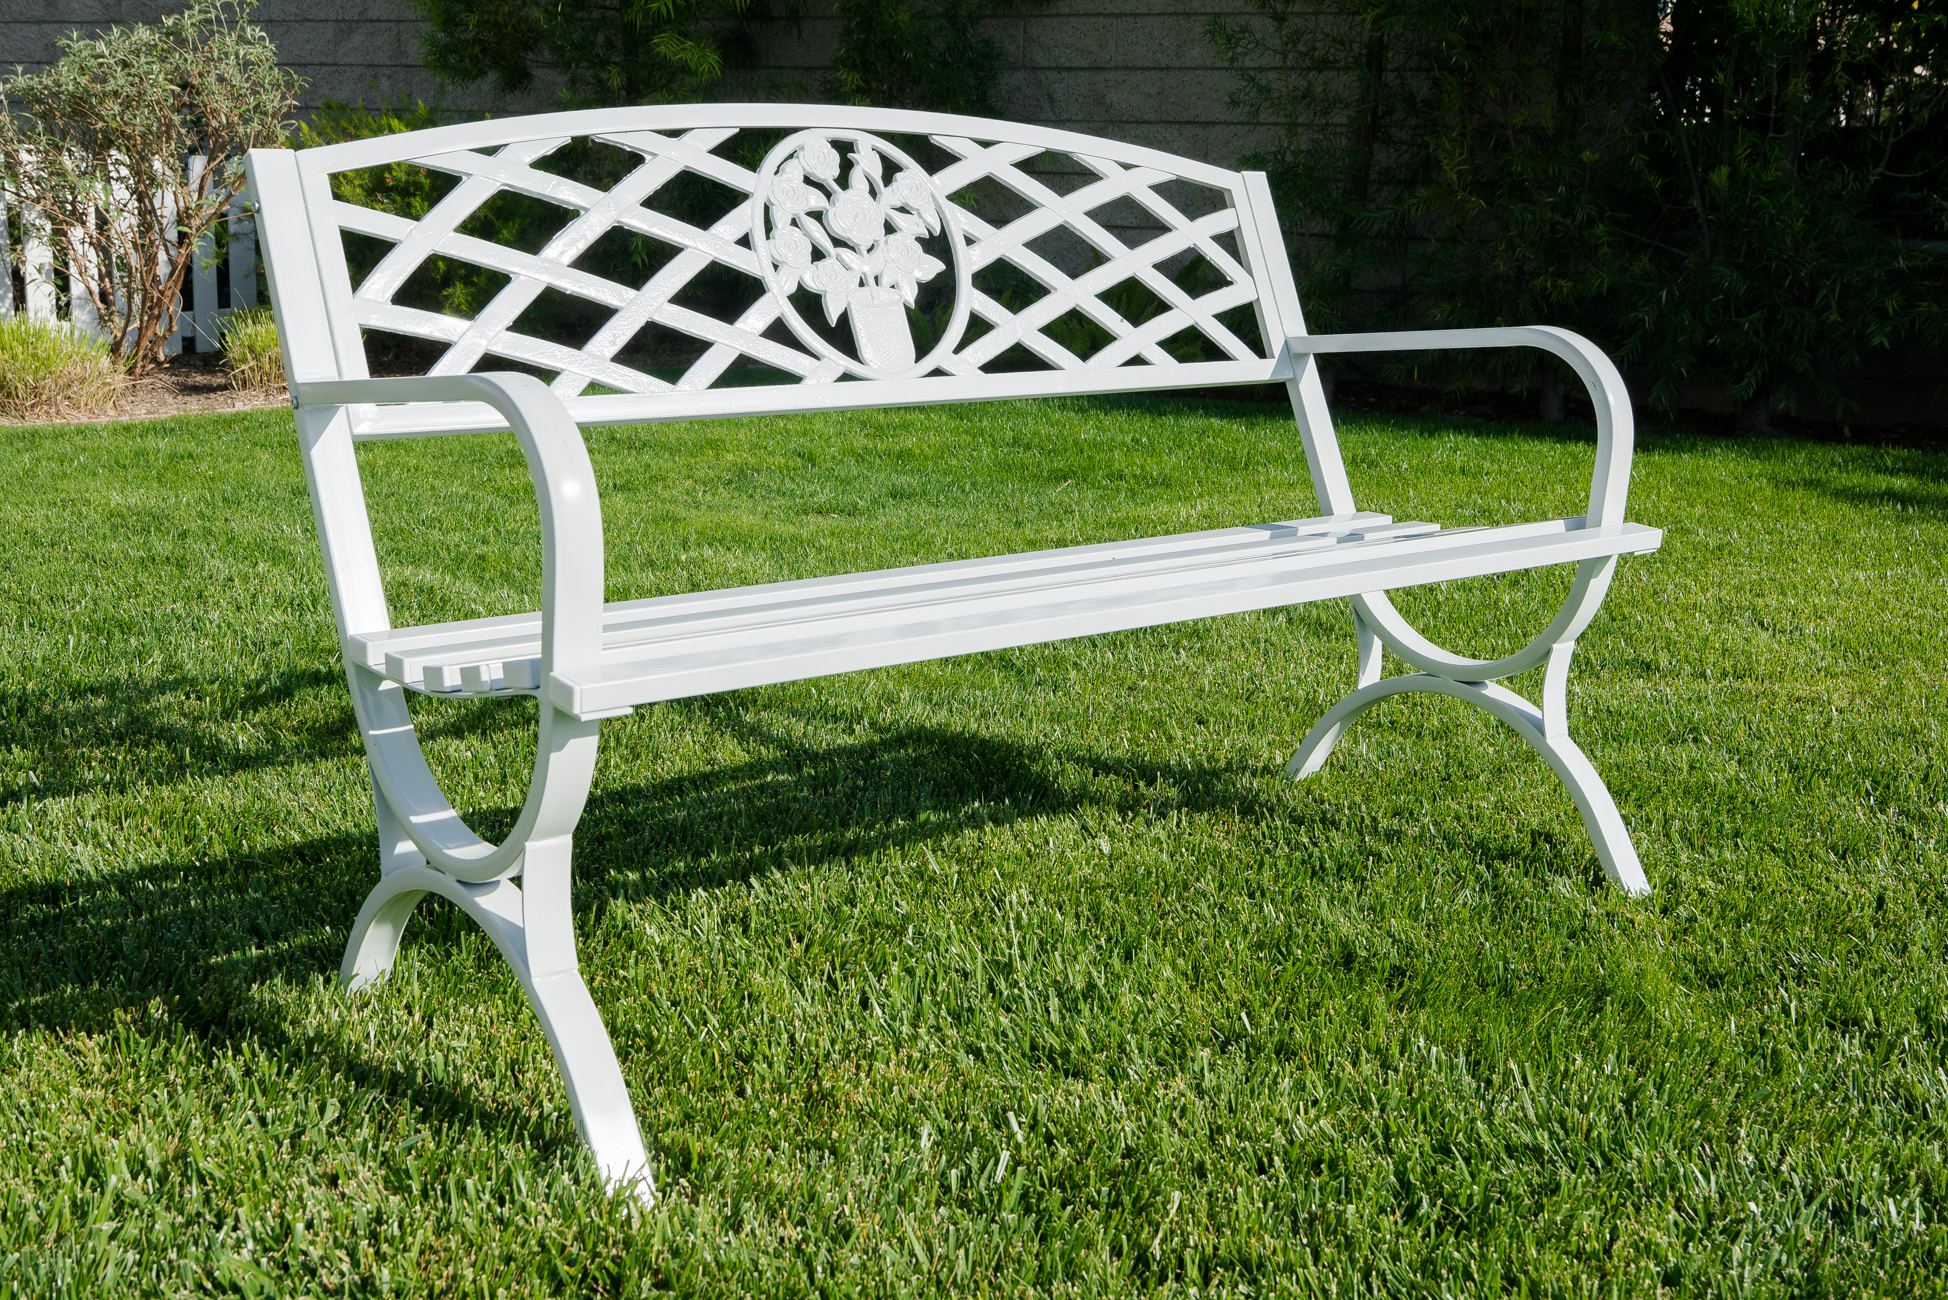 sa undef taranto type whitesh bench outdoor picid src beton garden concrete image white furniture